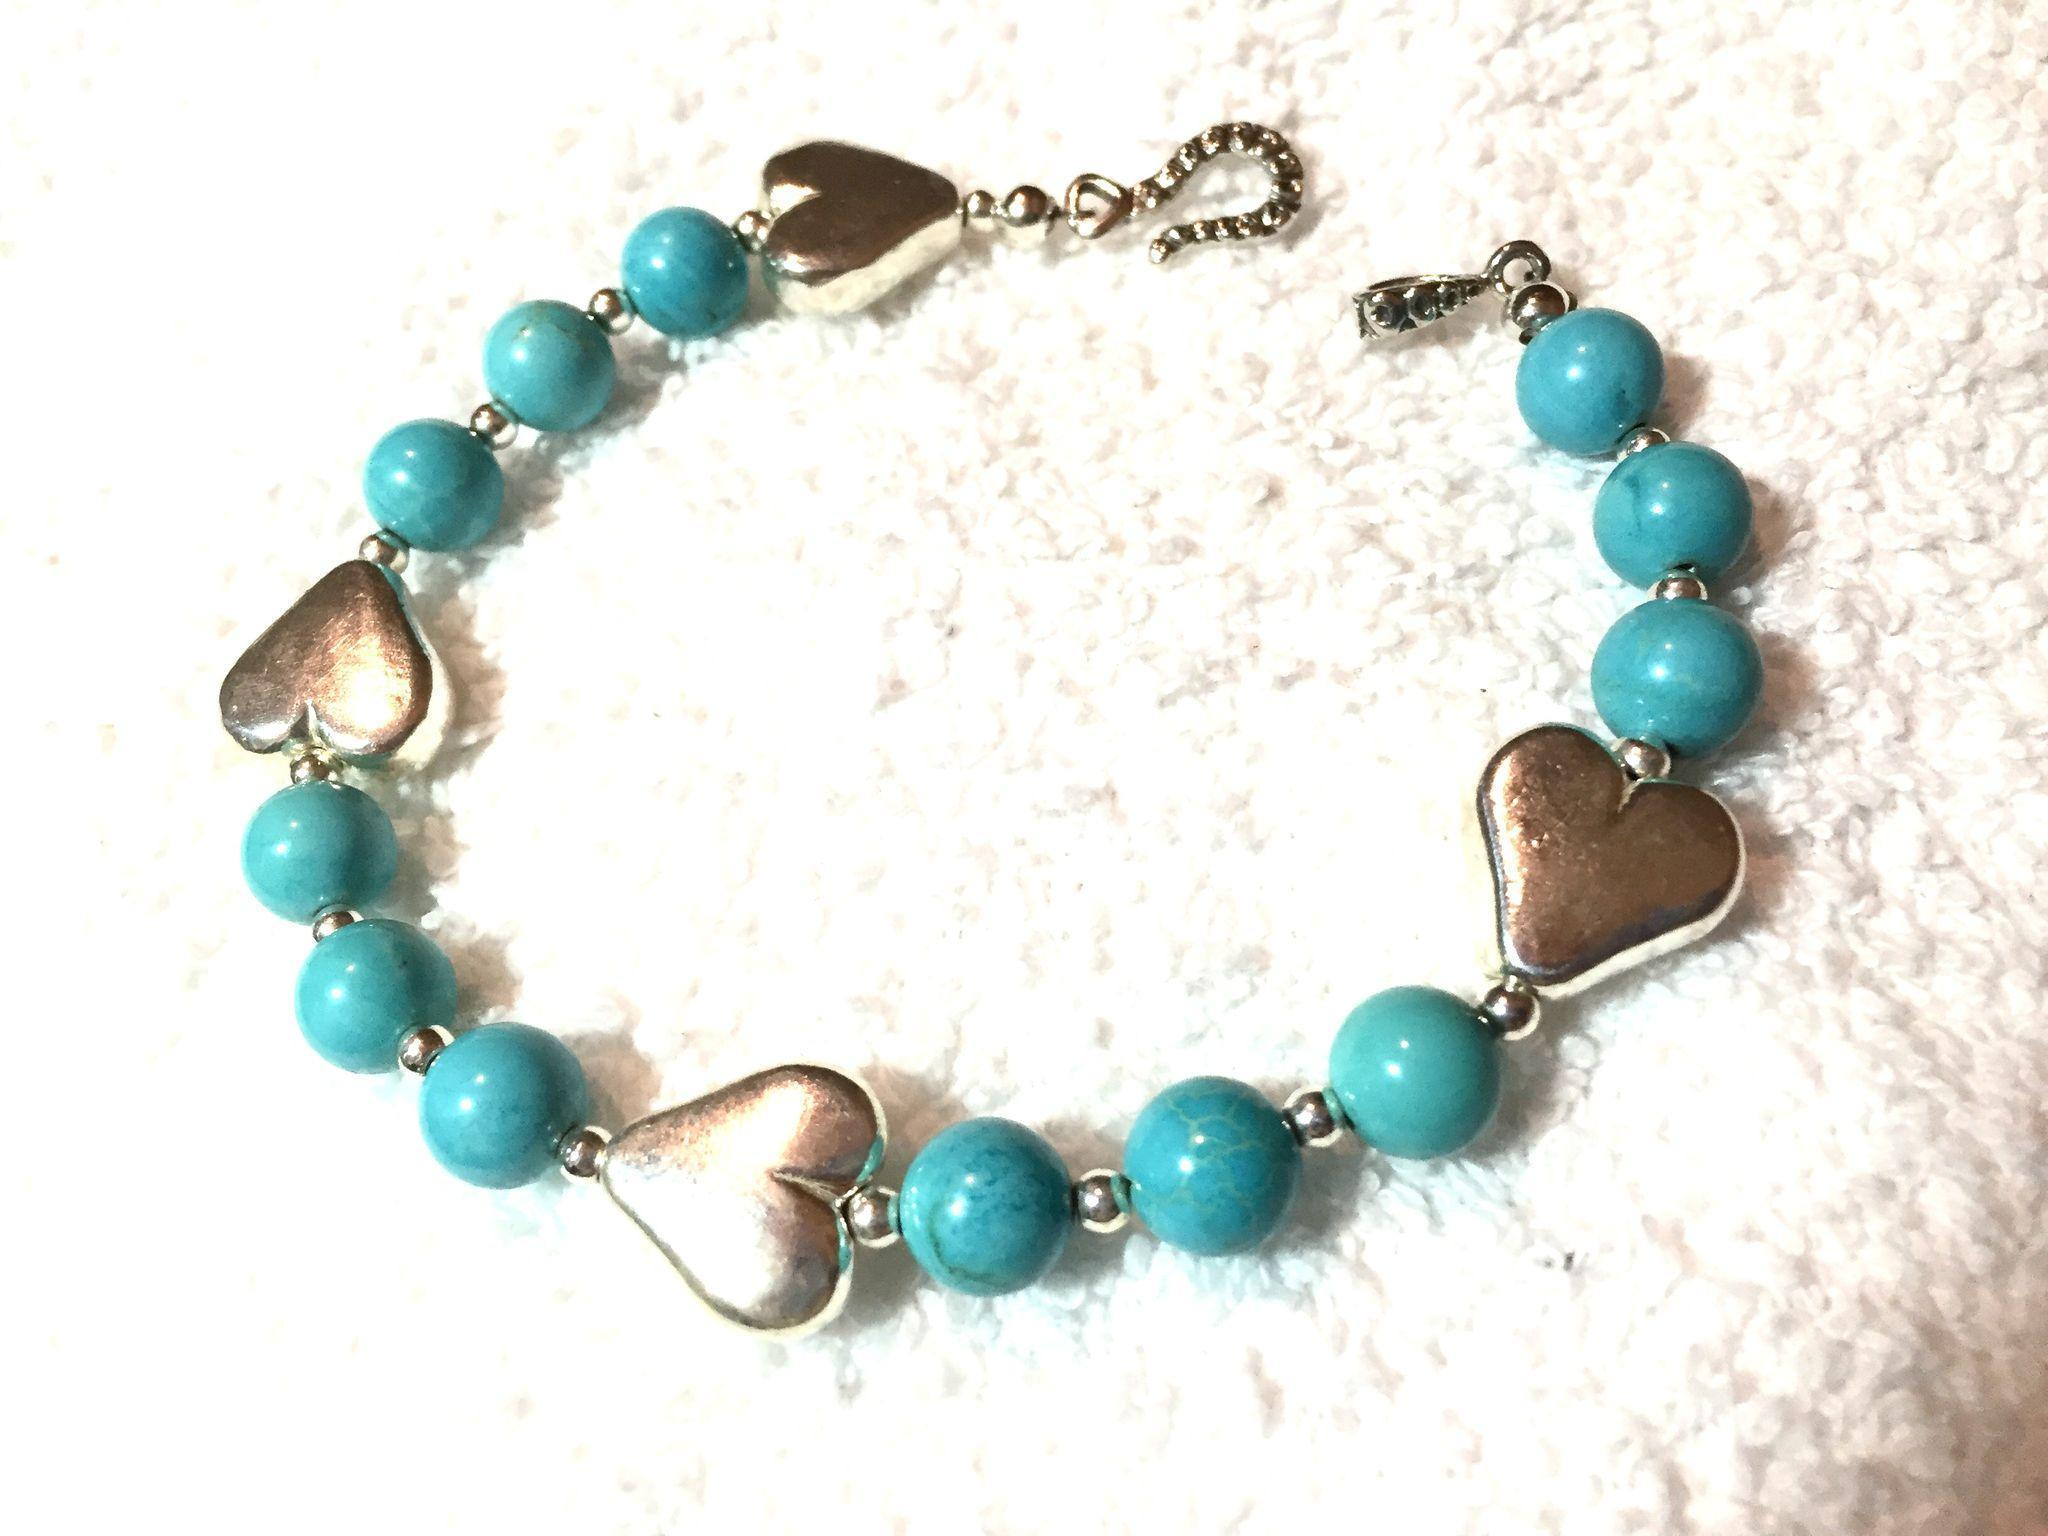 Natural Turquoise & Sterling Silver Heart Bracelet, 8 Inches